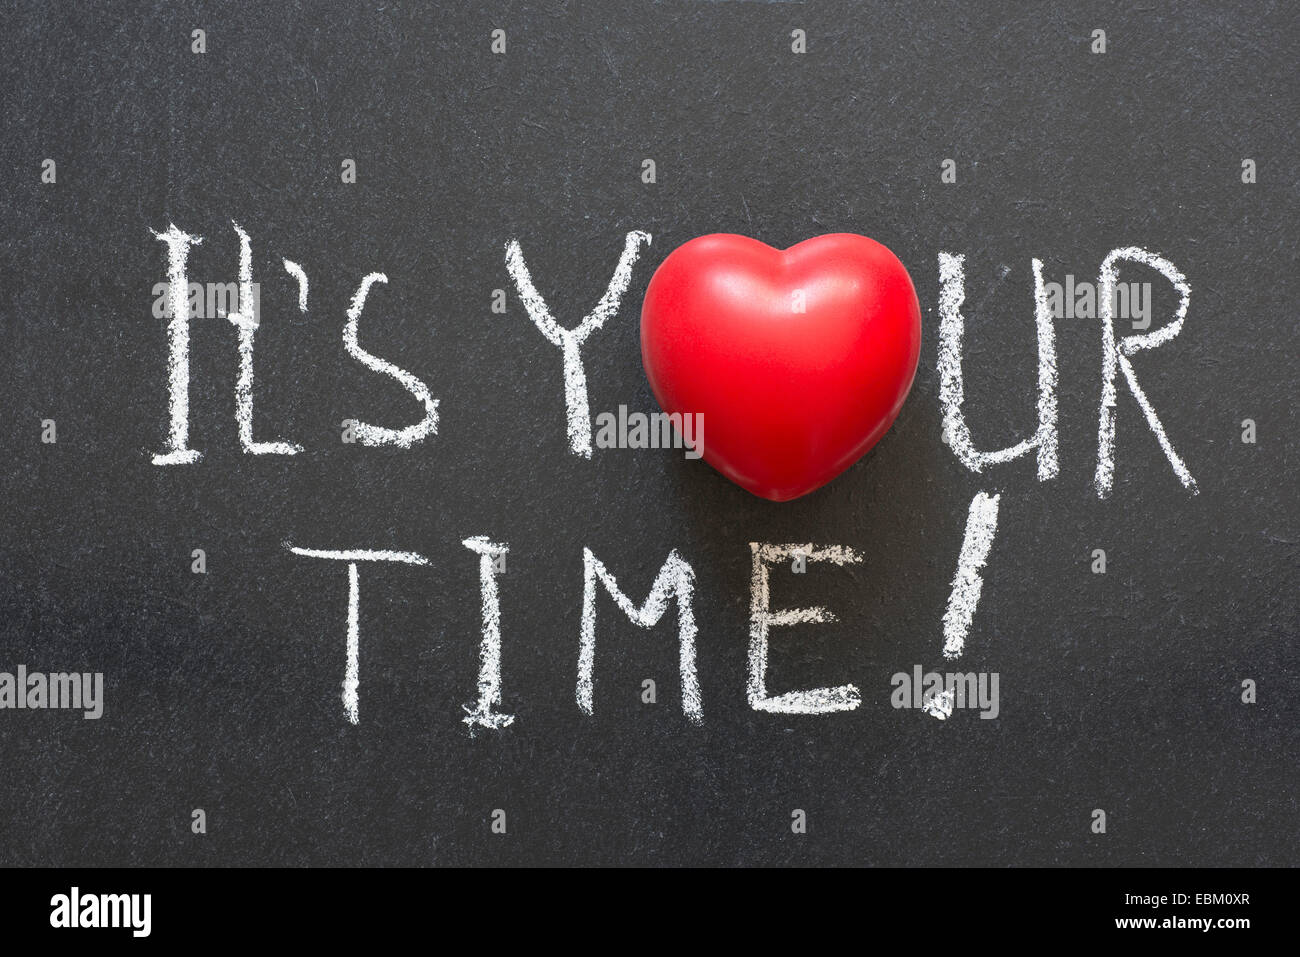 it is your time exclamation handwritten on chalkboard with heart symbol instead of O - Stock Image